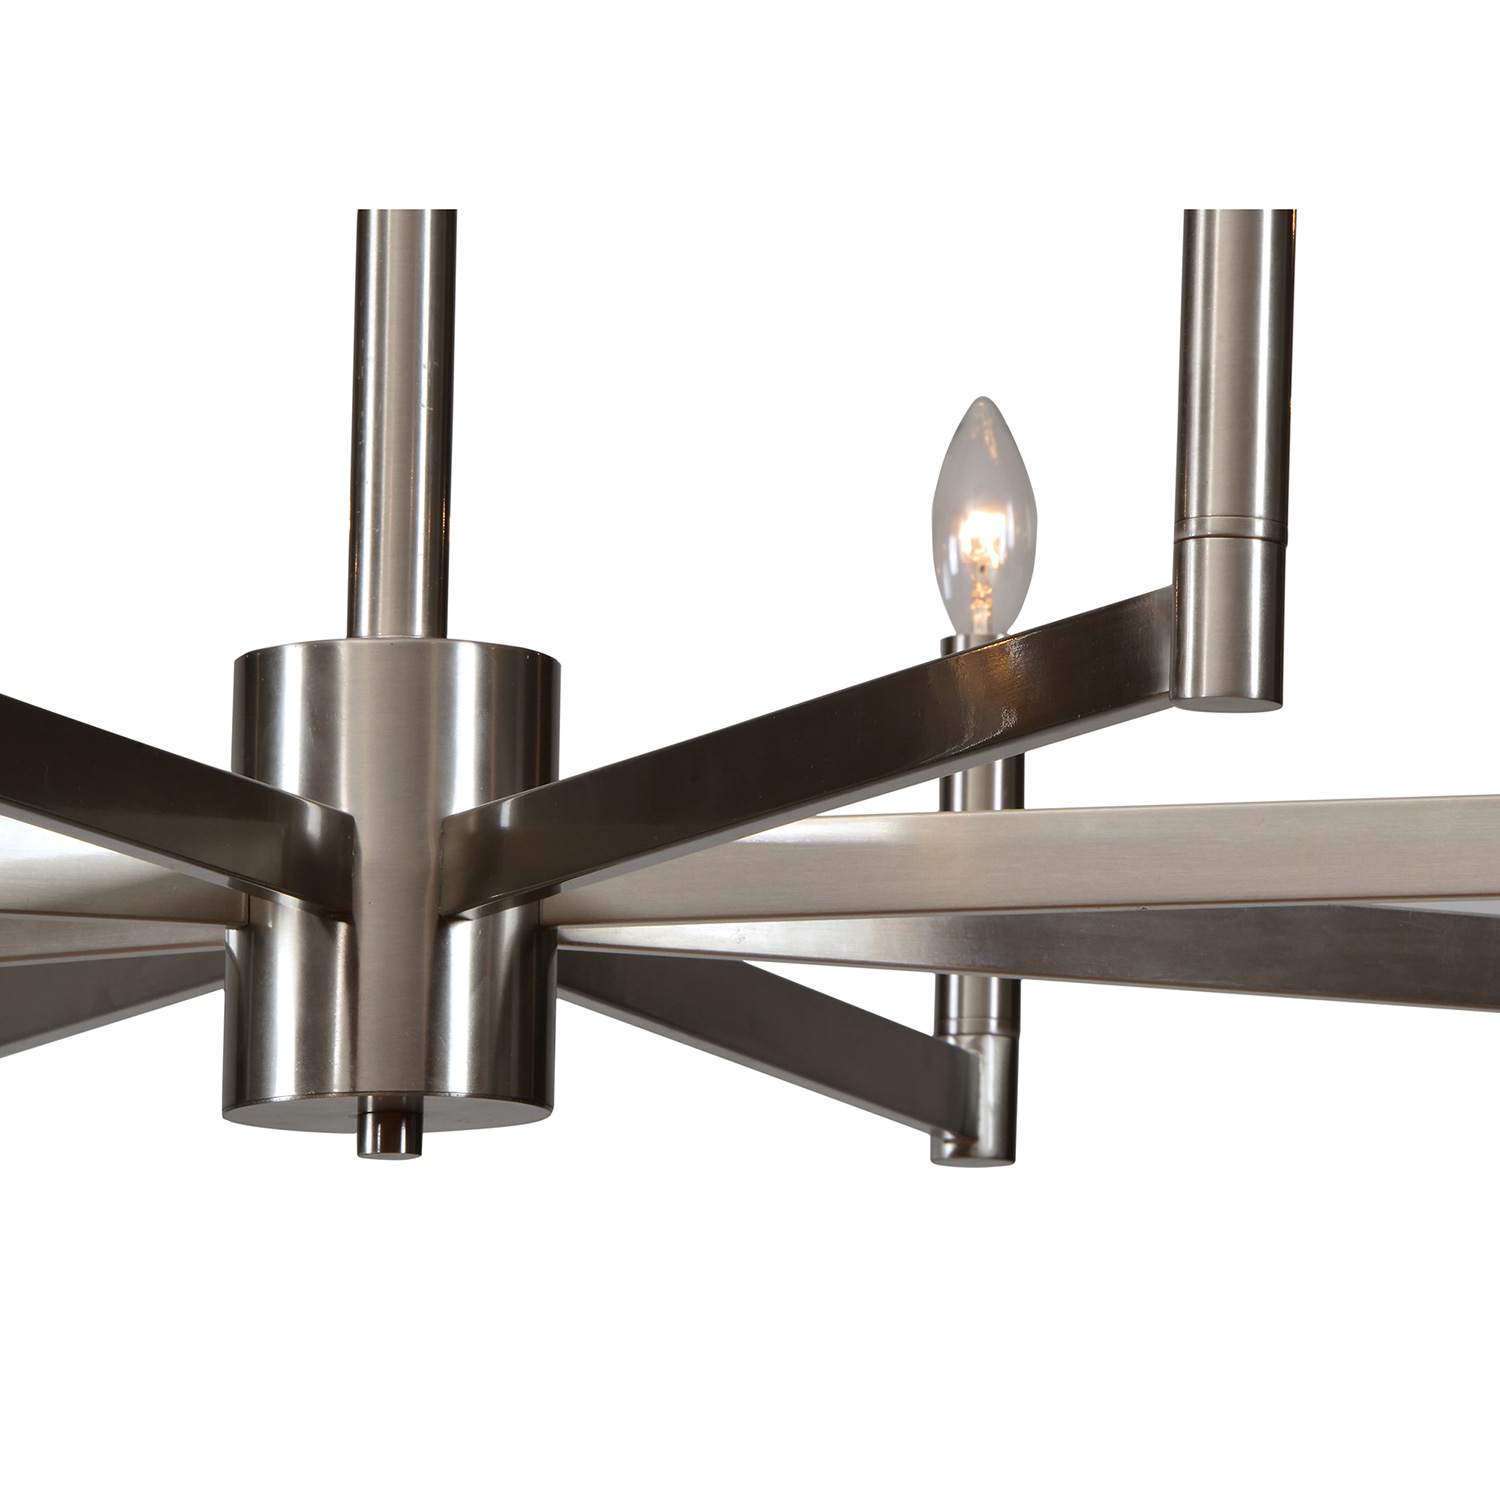 Ren-Wil Bayfield Ceiling Fixture - Satin Nickel